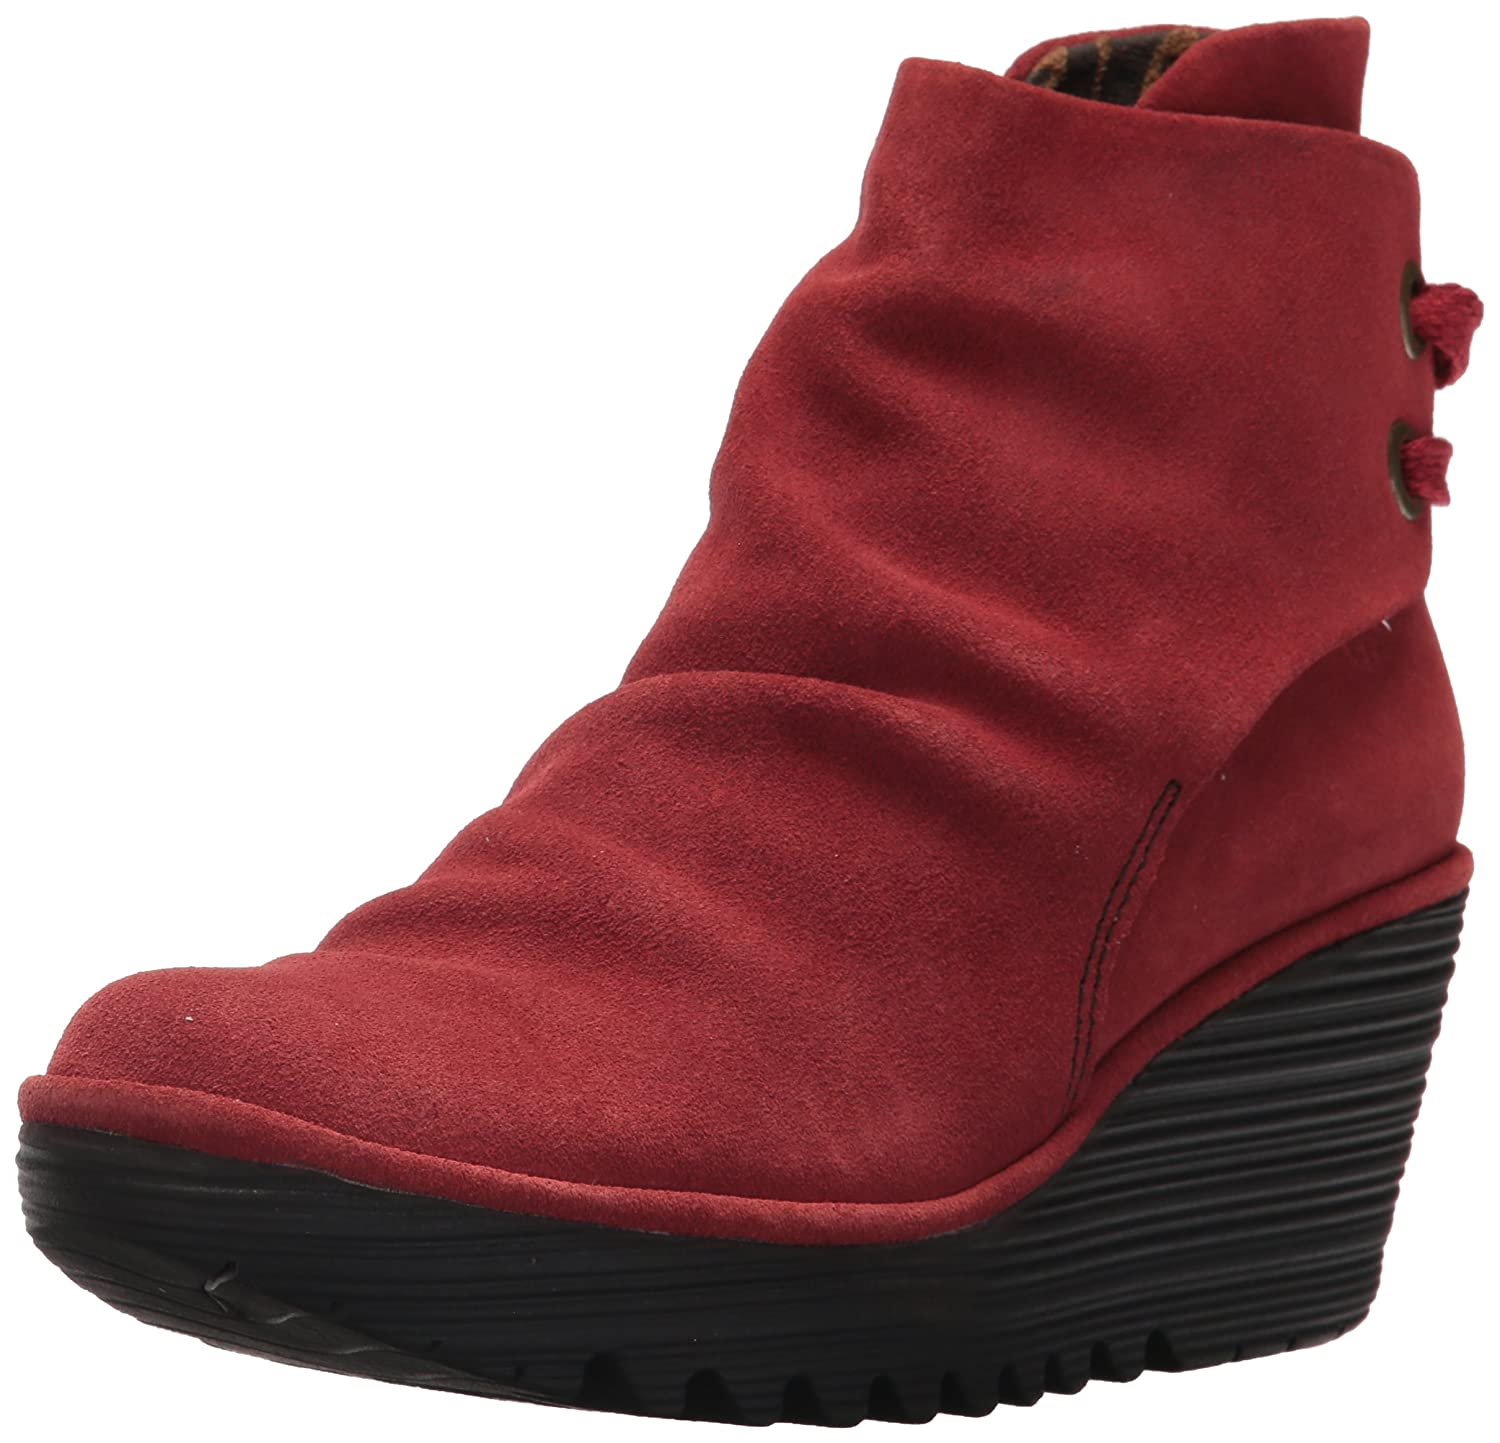 Fly 021) London 17448 Yama, Rouge Bottes Classiques Femme Rouge (Red 021) 8c296f3 - latesttechnology.space